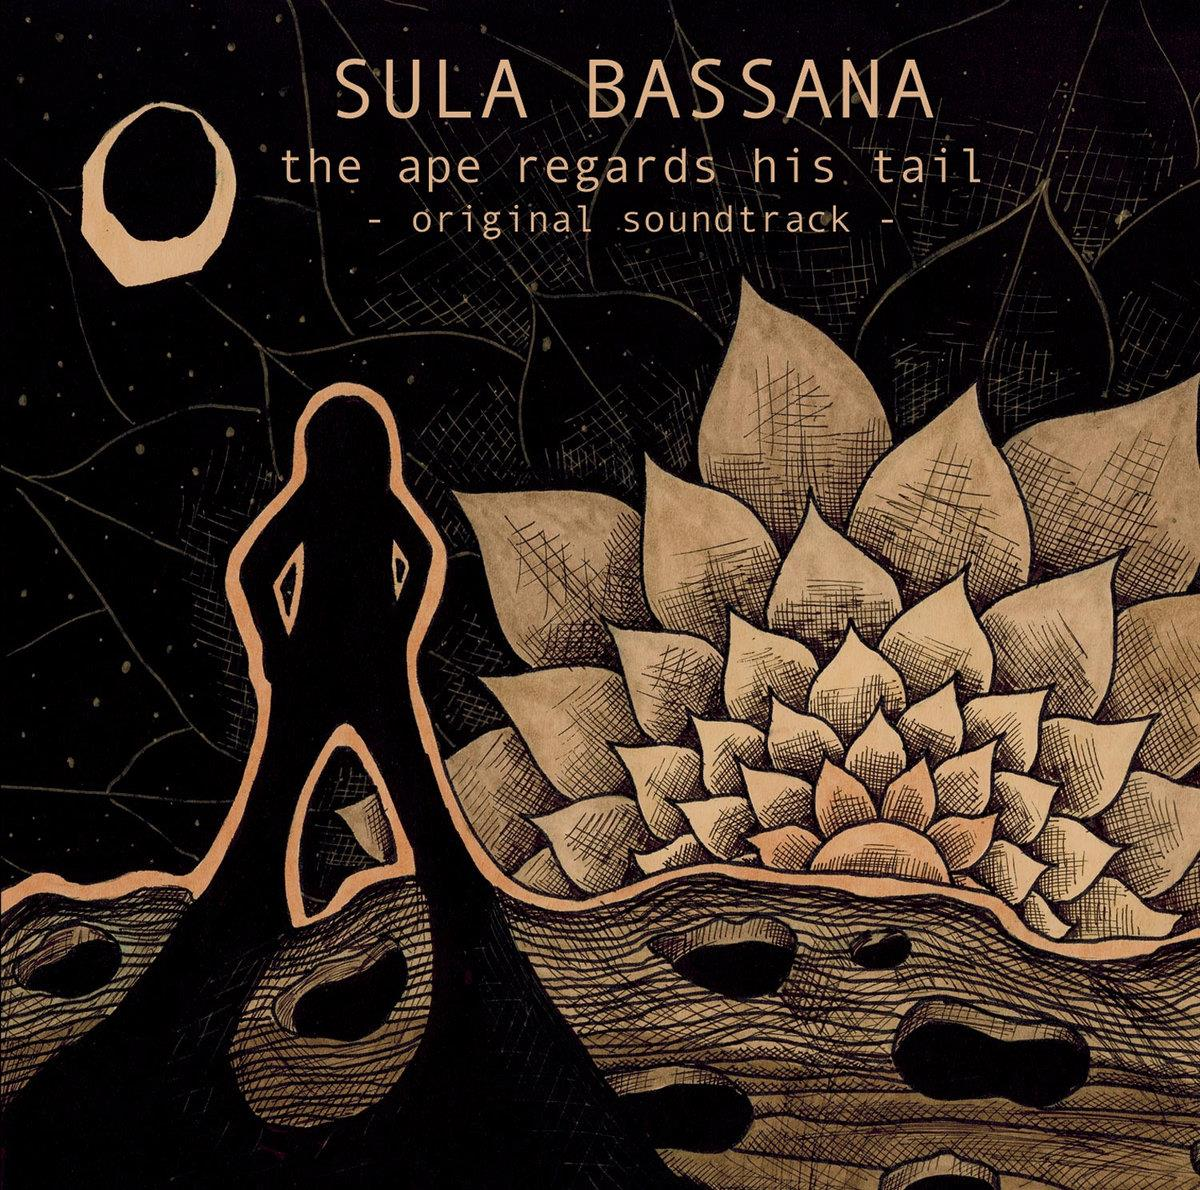 Sula Bassana - The Ape Regards His Tail [2xLP] (Clear vinyl)